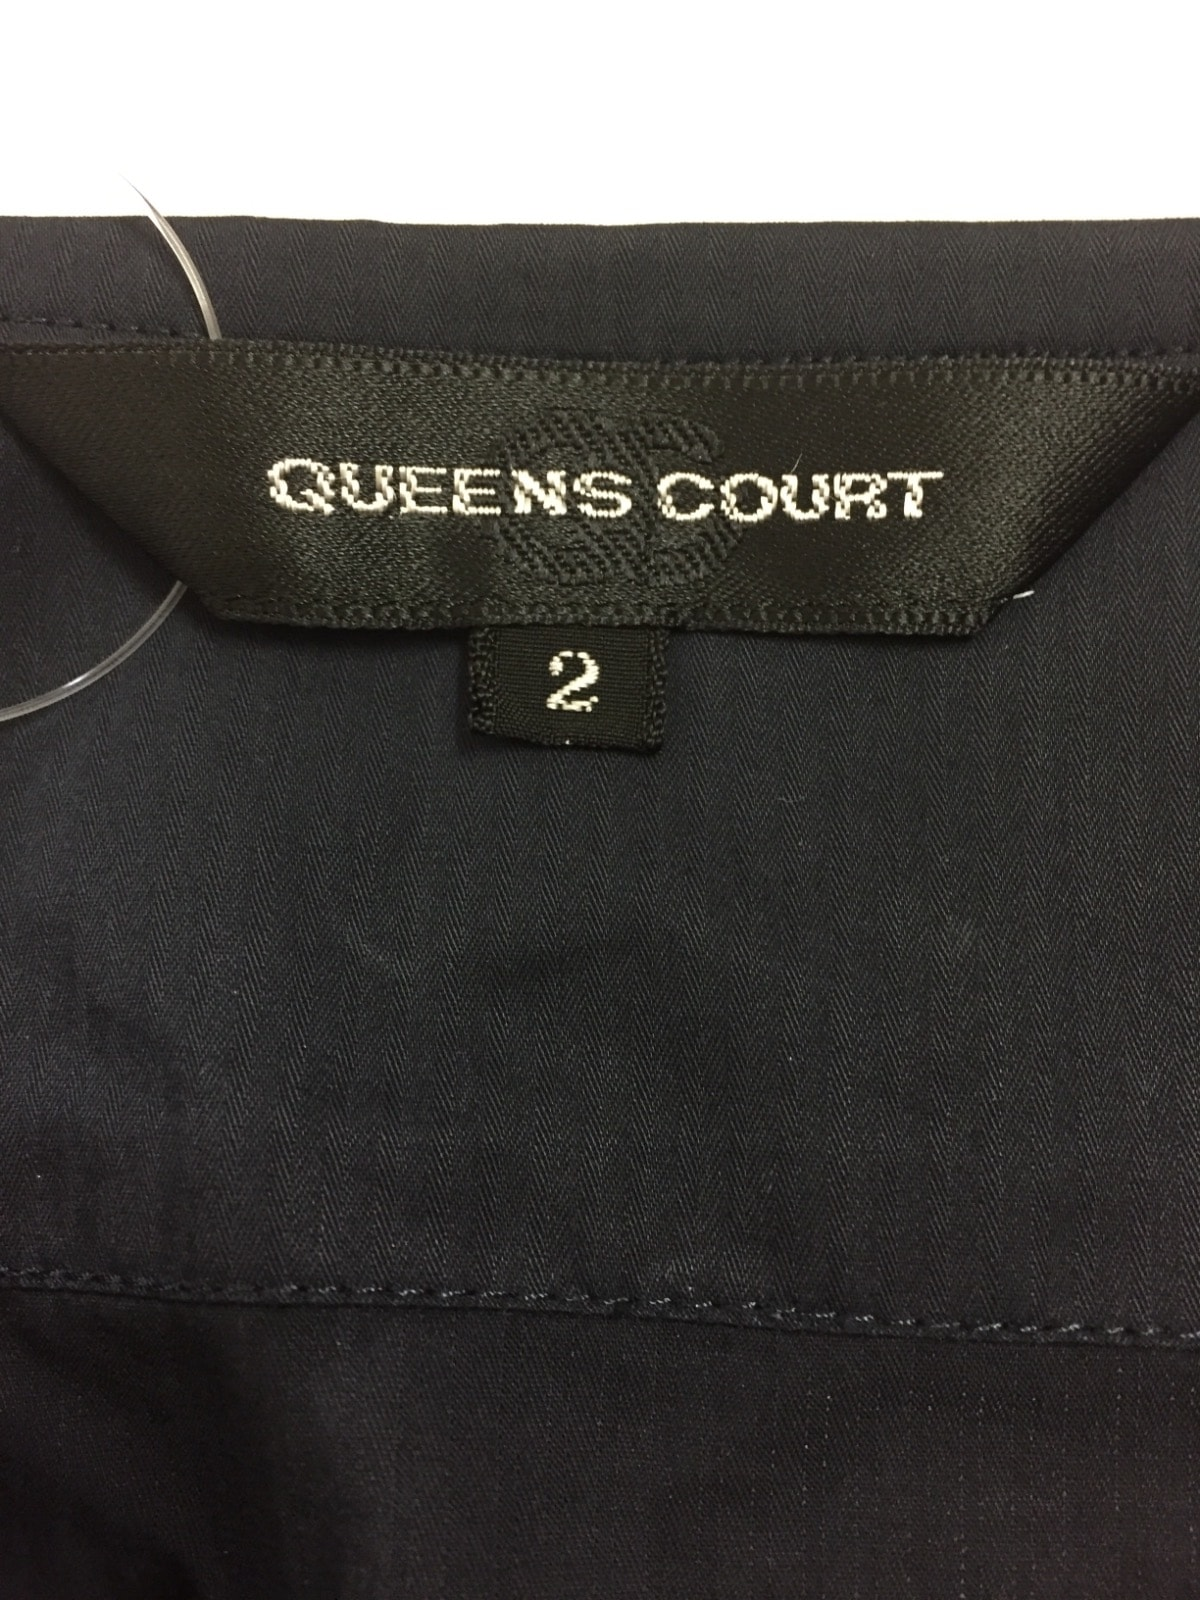 QUEENS COURT(クイーンズコート)のスカートセットアップ